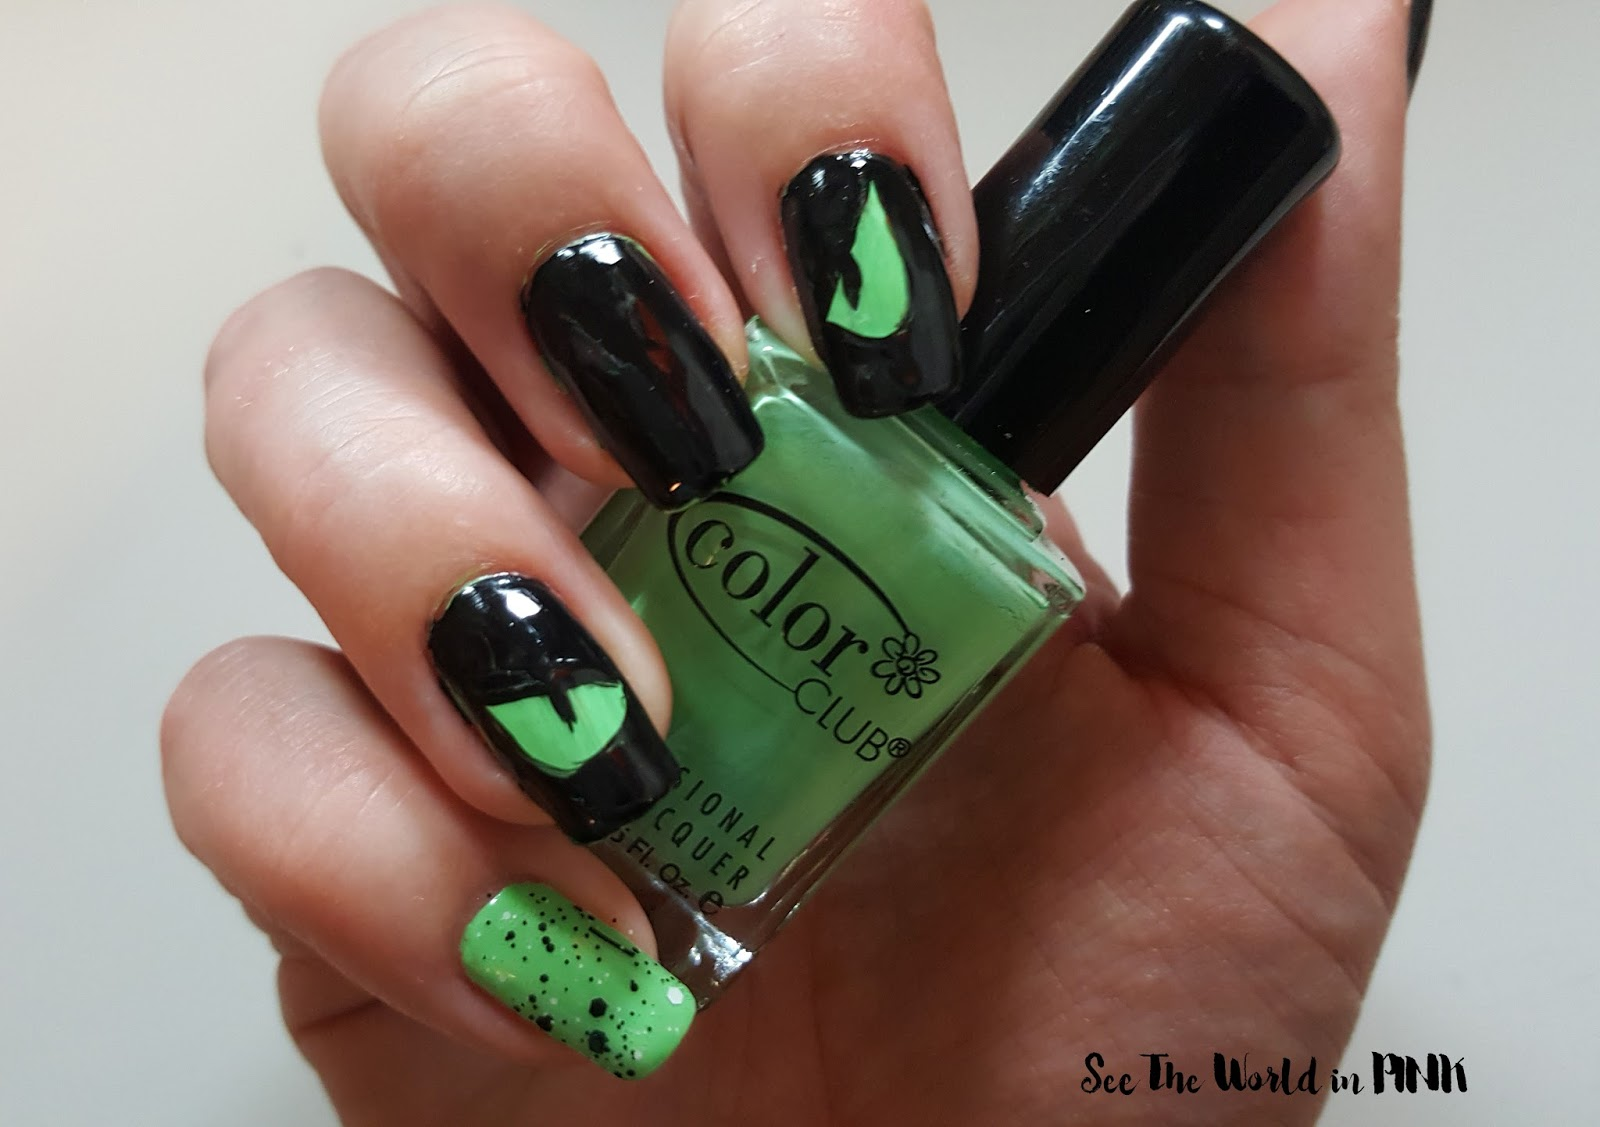 Manicure Monday - Best of Halloween Nail Art Looks!